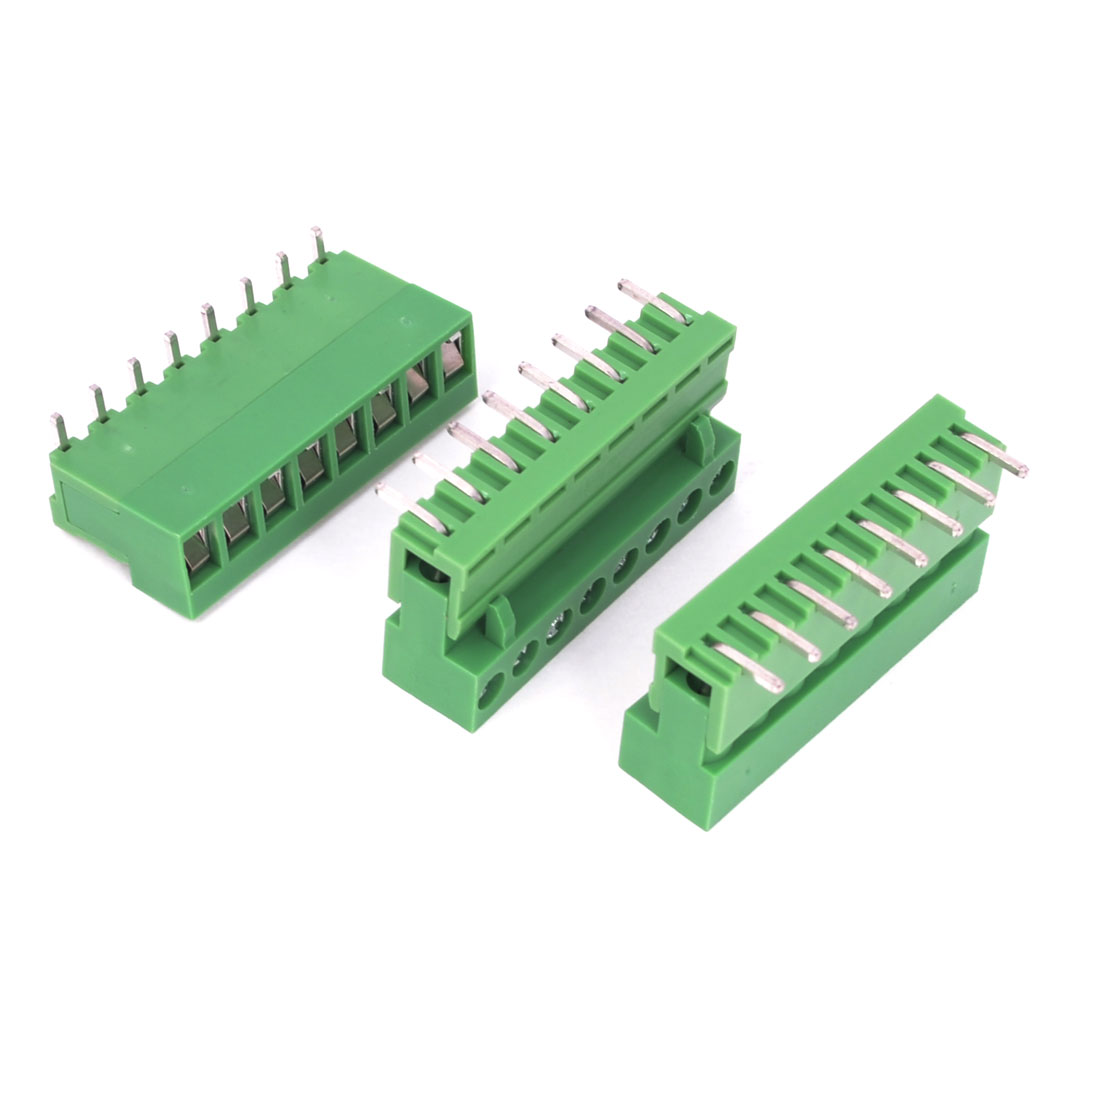 3 Pcs AC 300V 10A 8P Pins PCB Screw Terminal Block Connector 5.08mm Pitch Green